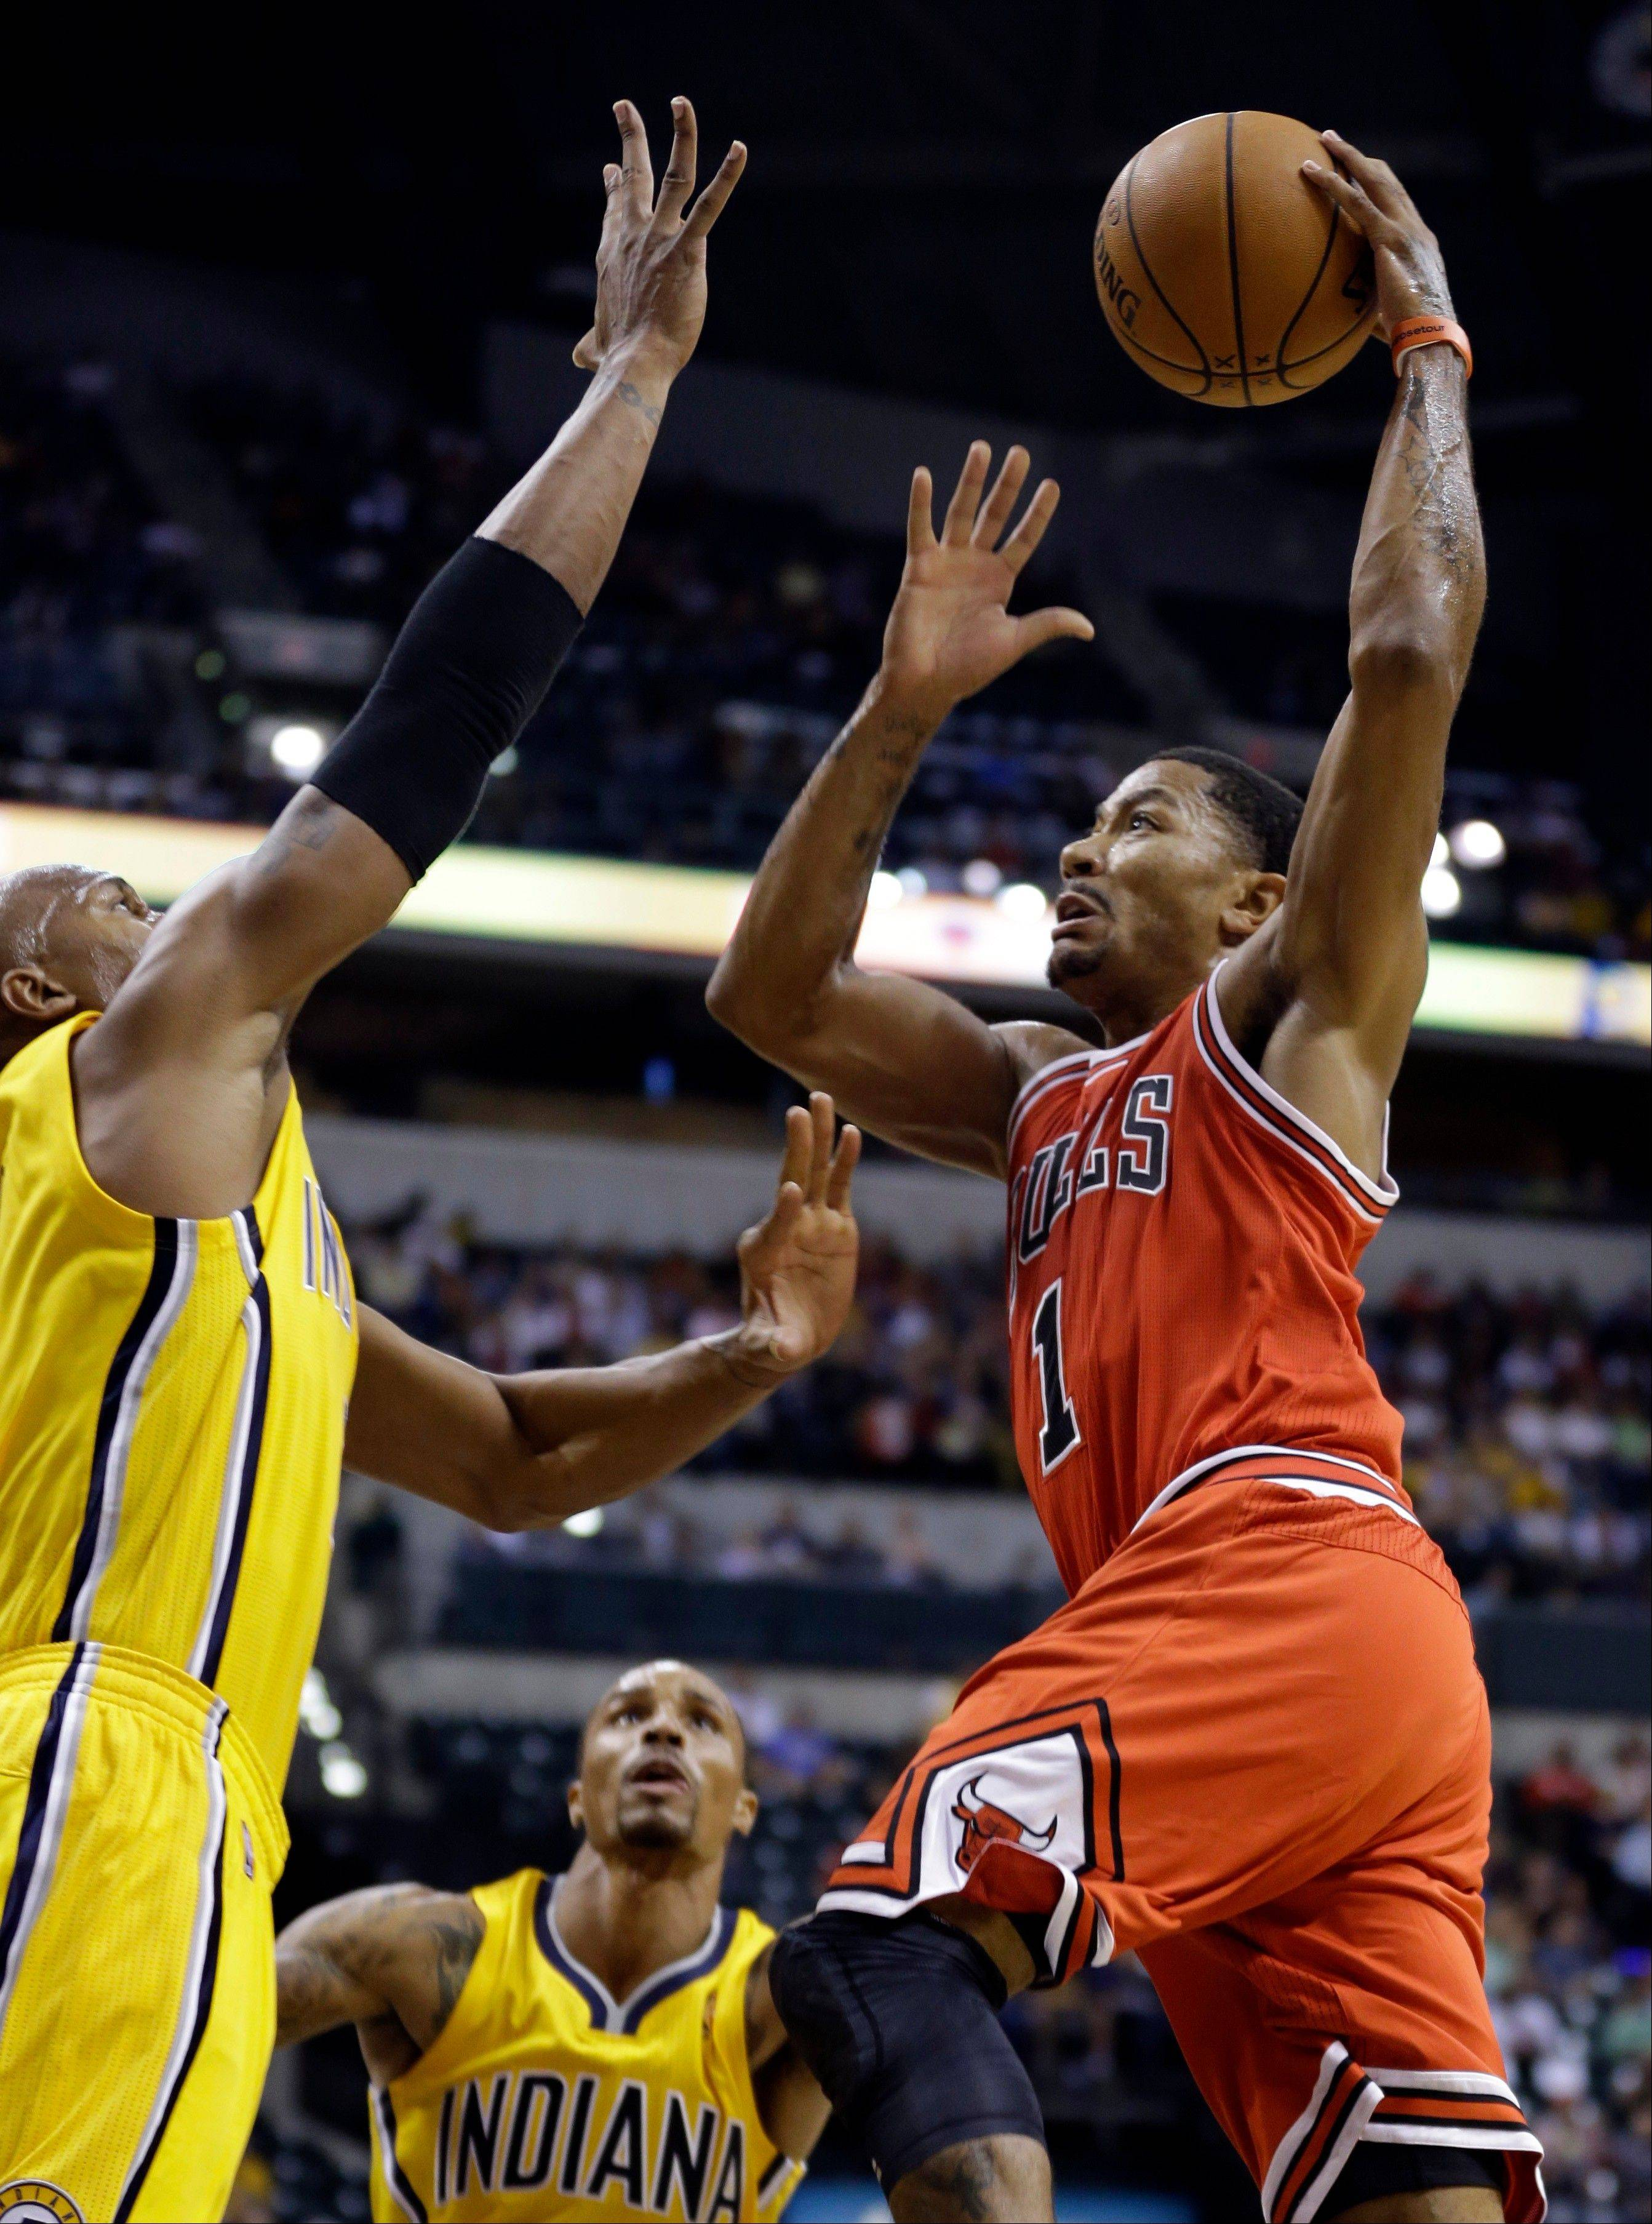 Chicago Bulls guard Derrick Rose, right, goes up for a shot over Indiana Pacers forward David West, left, in the first half of an NBA preseason basketball game Saturday in Indianapolis.